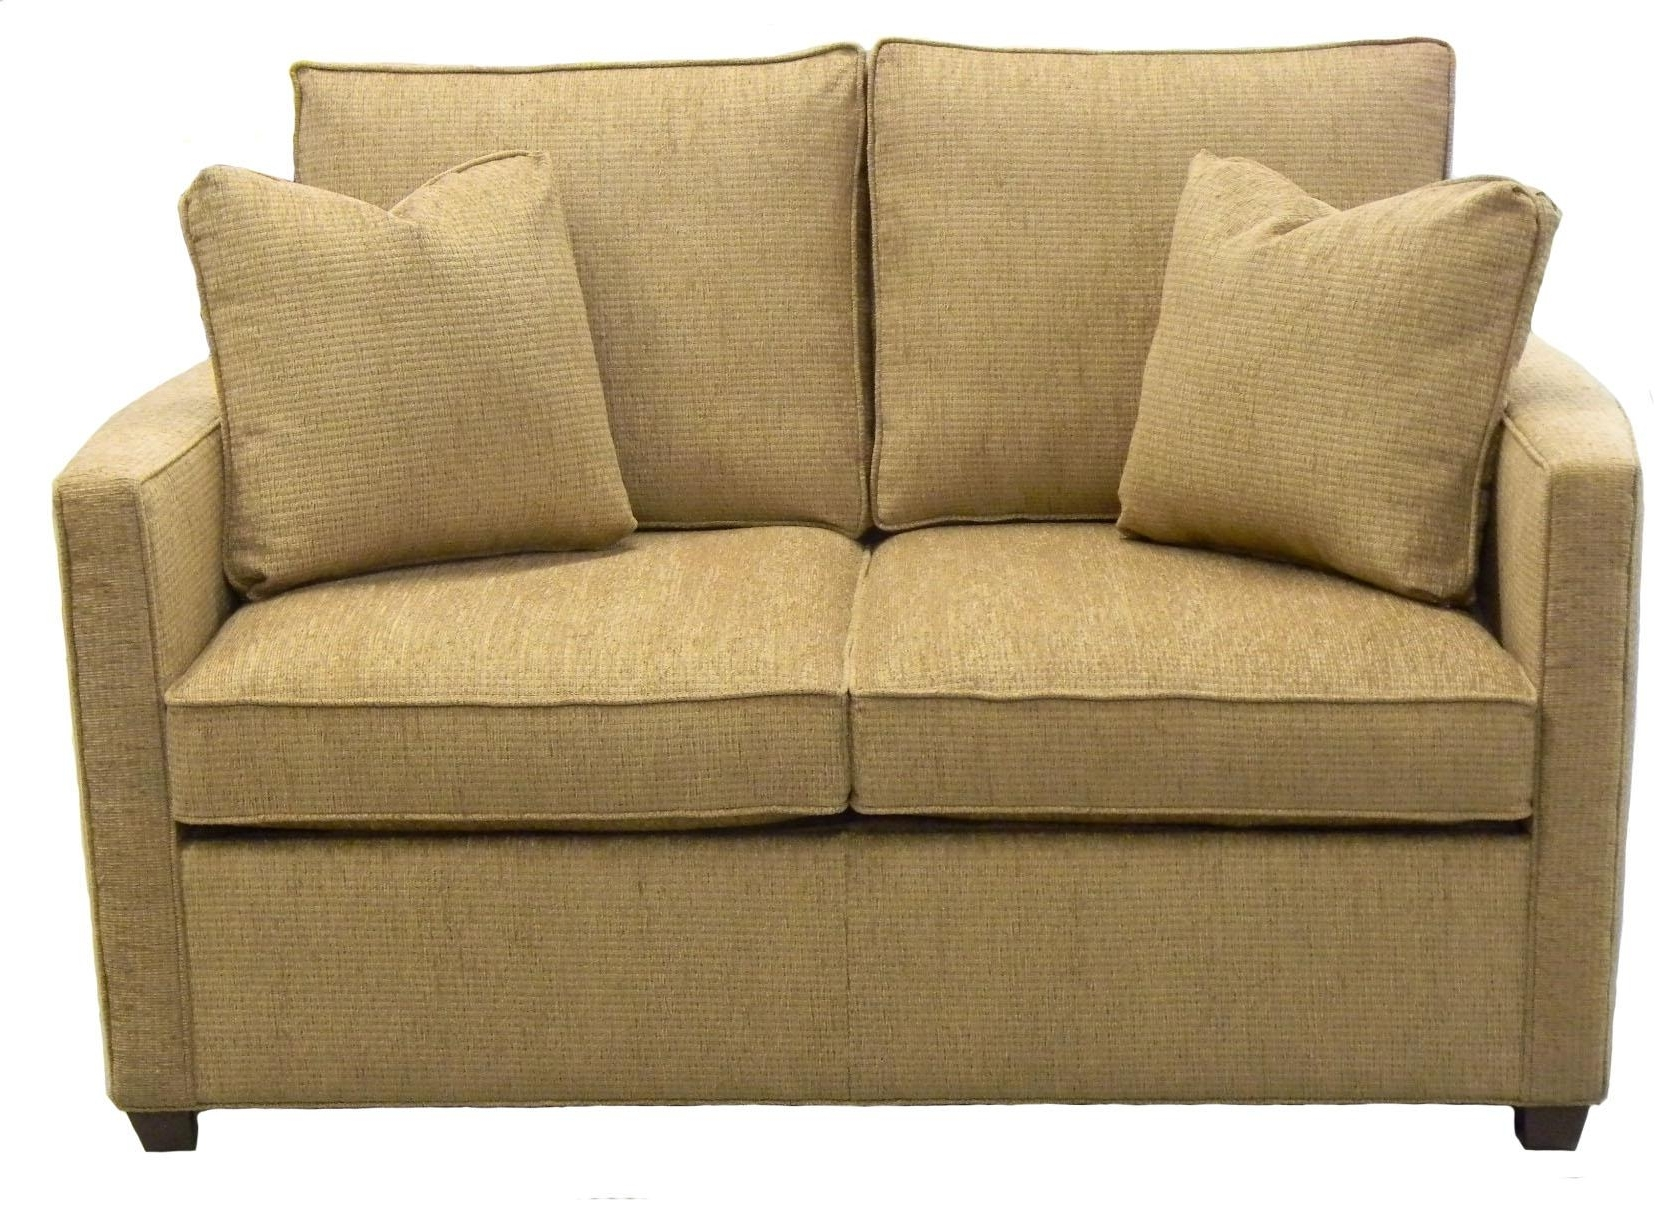 Twin Sofa Chairs Within Best And Newest Furniture : Loveseat Sleepers Elegant Sleeper Chair Ikea Ikea Ps (View 15 of 20)